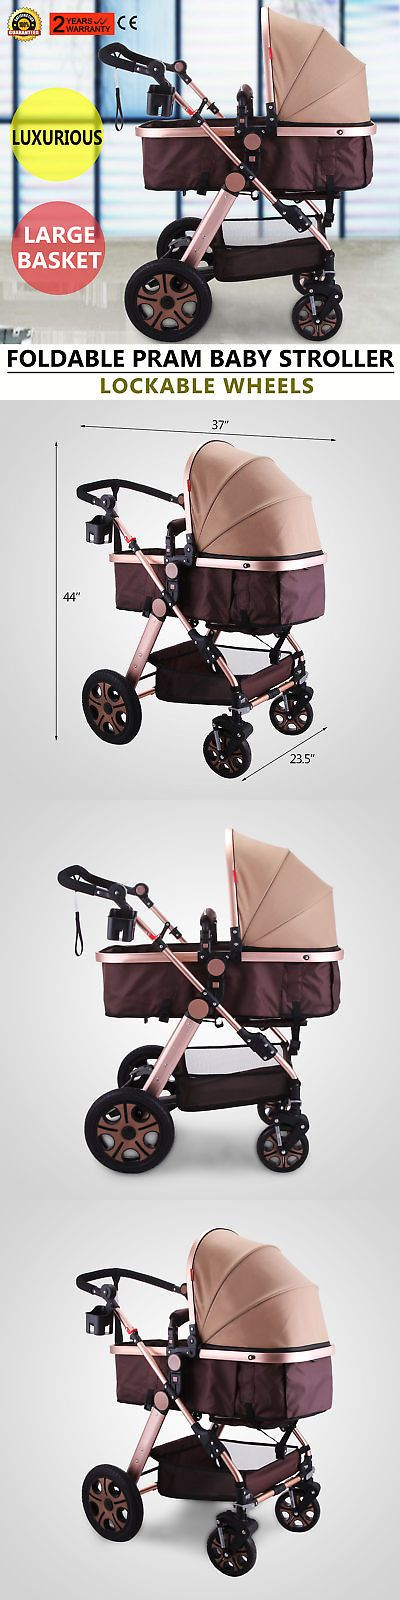 Other Stroller Accessories 180917: Foldable Newborn Baby Stroller Buggy Pram Pushchair Carriage Infant Travel Car -> BUY IT NOW ONLY: $137.83 on eBay!